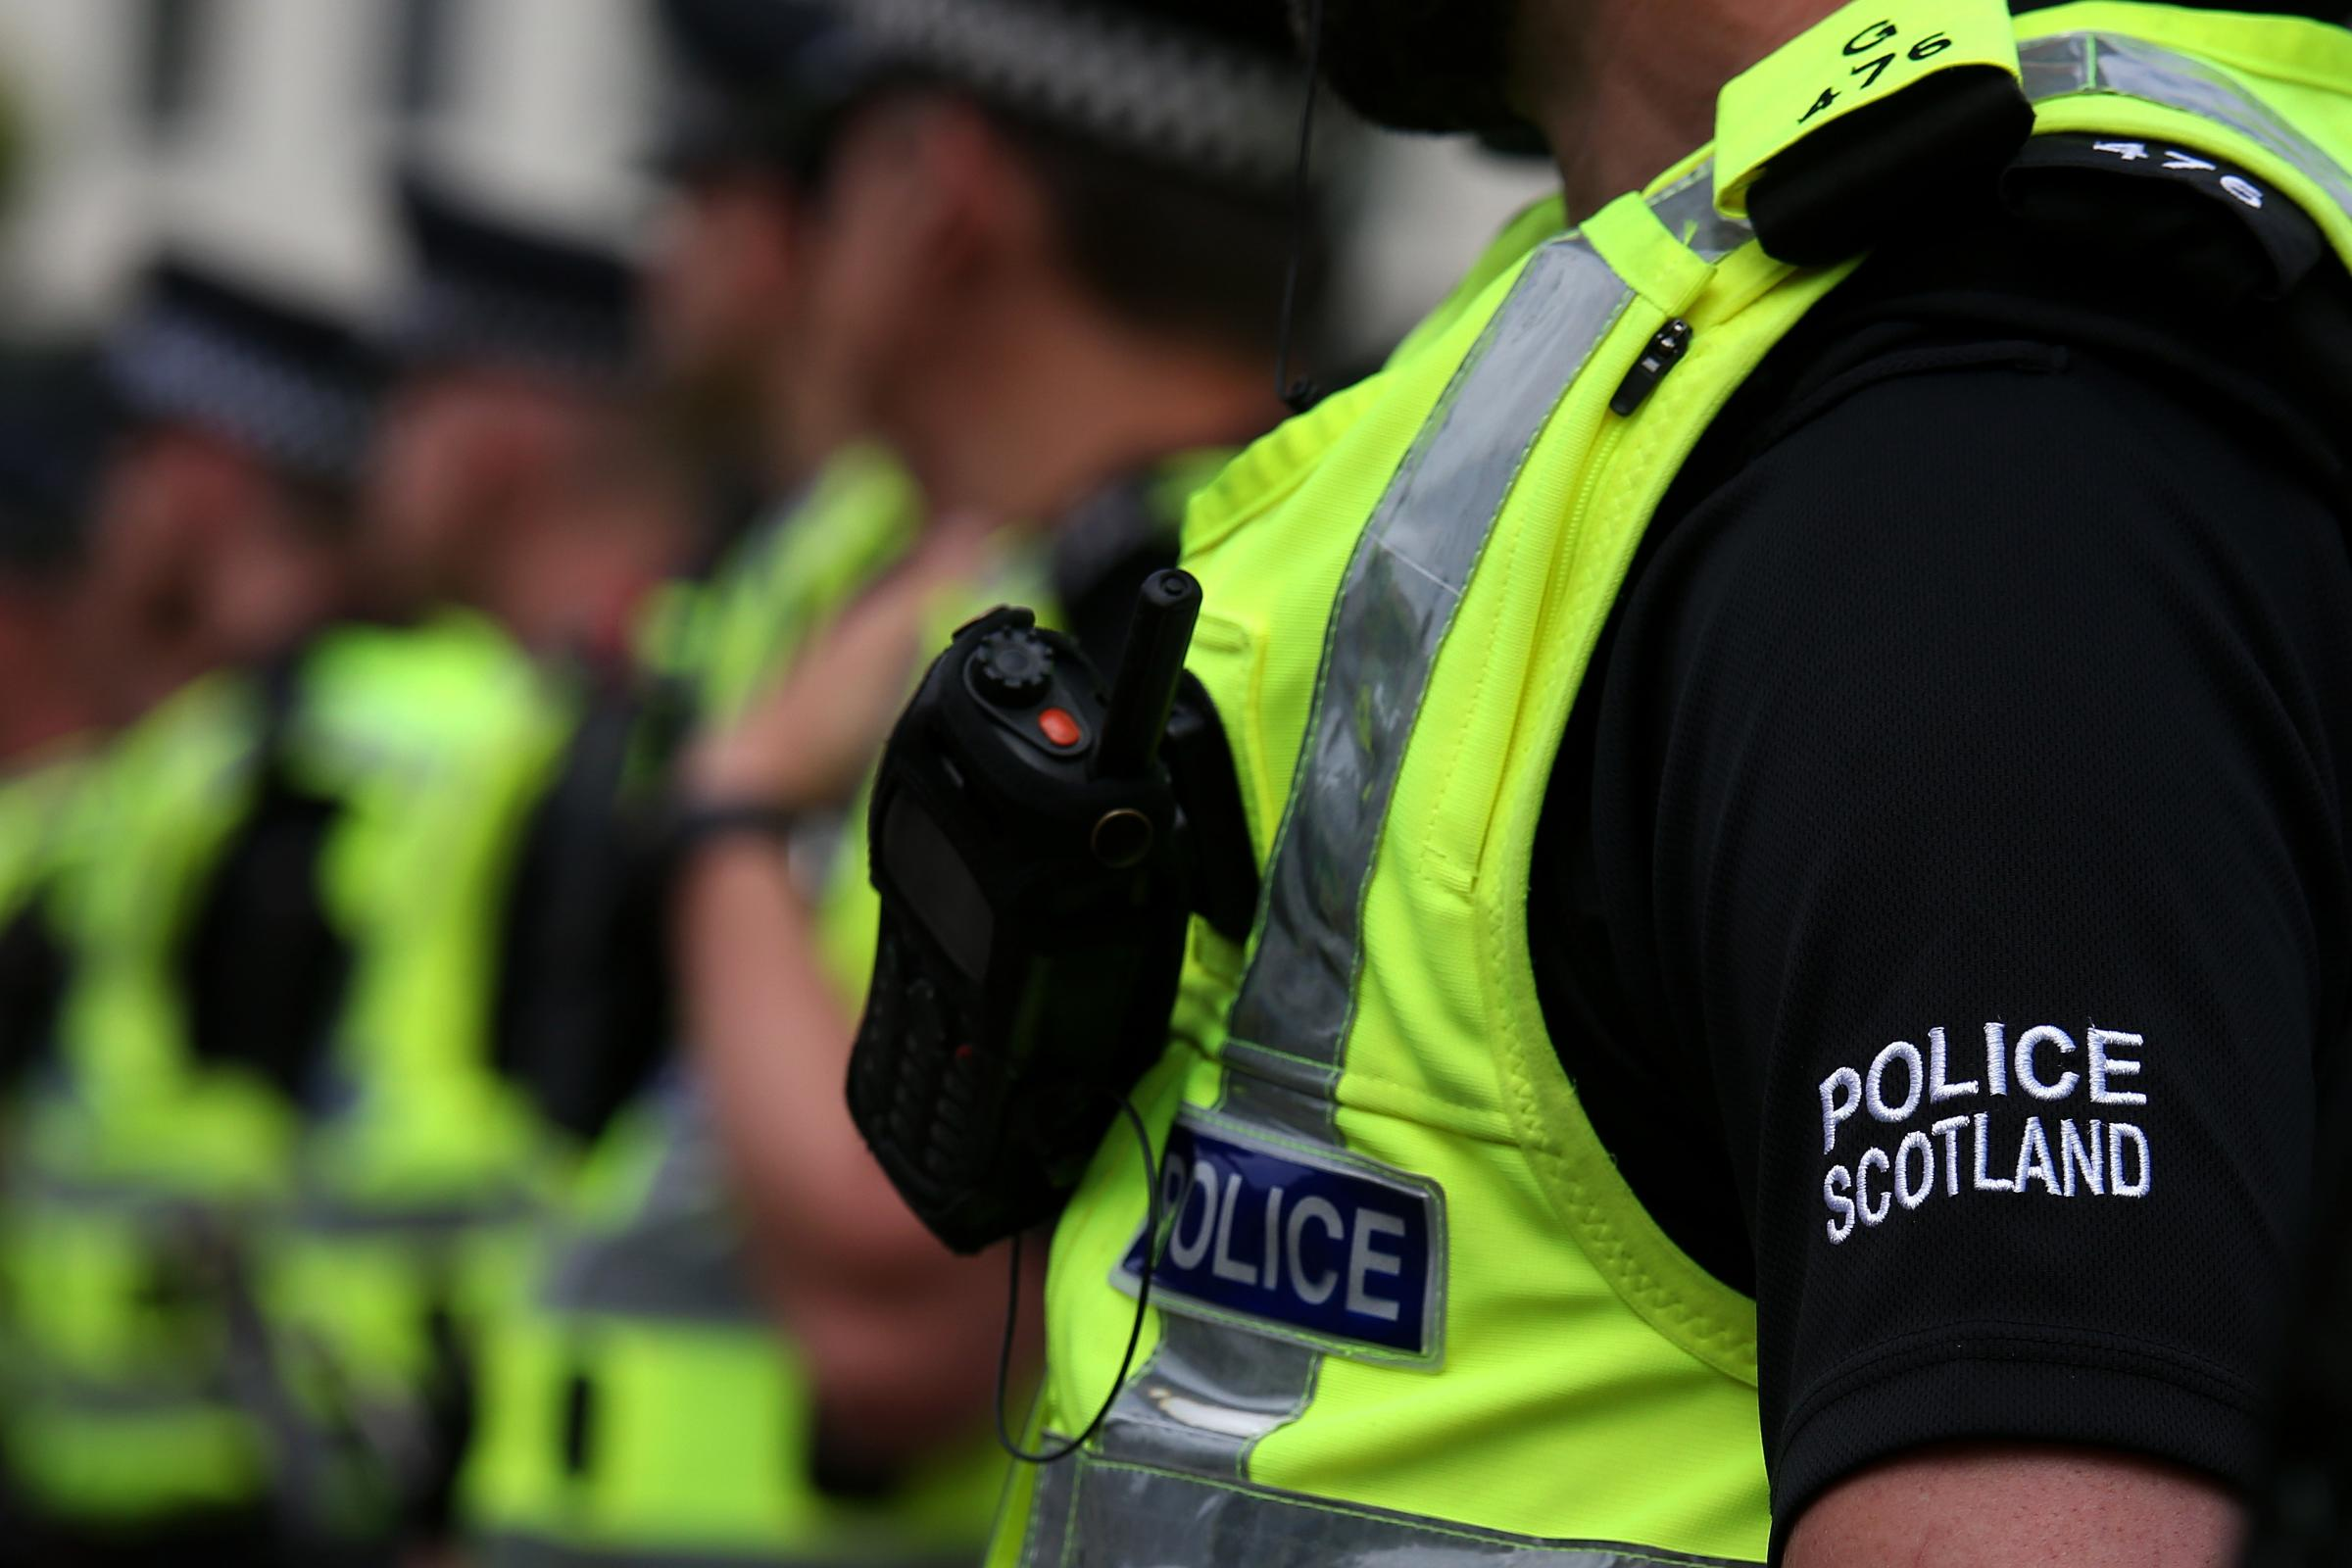 A Police Scotland officer